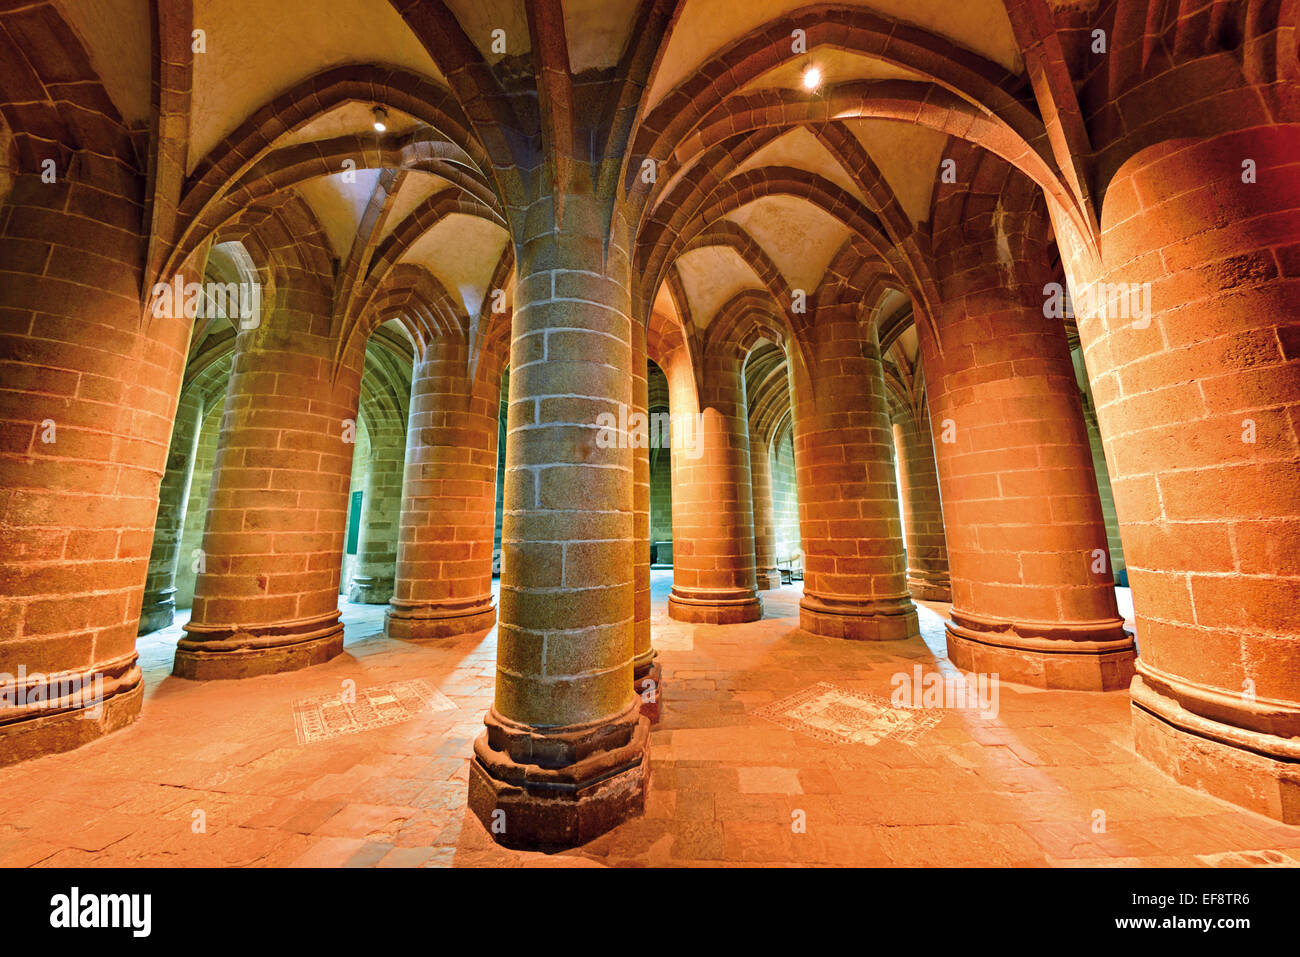 France, Normandy: Detailed  view of the  Great Pillar Crypt of the Abbey St. Pierre in Le Mont St. Michel - Stock Image